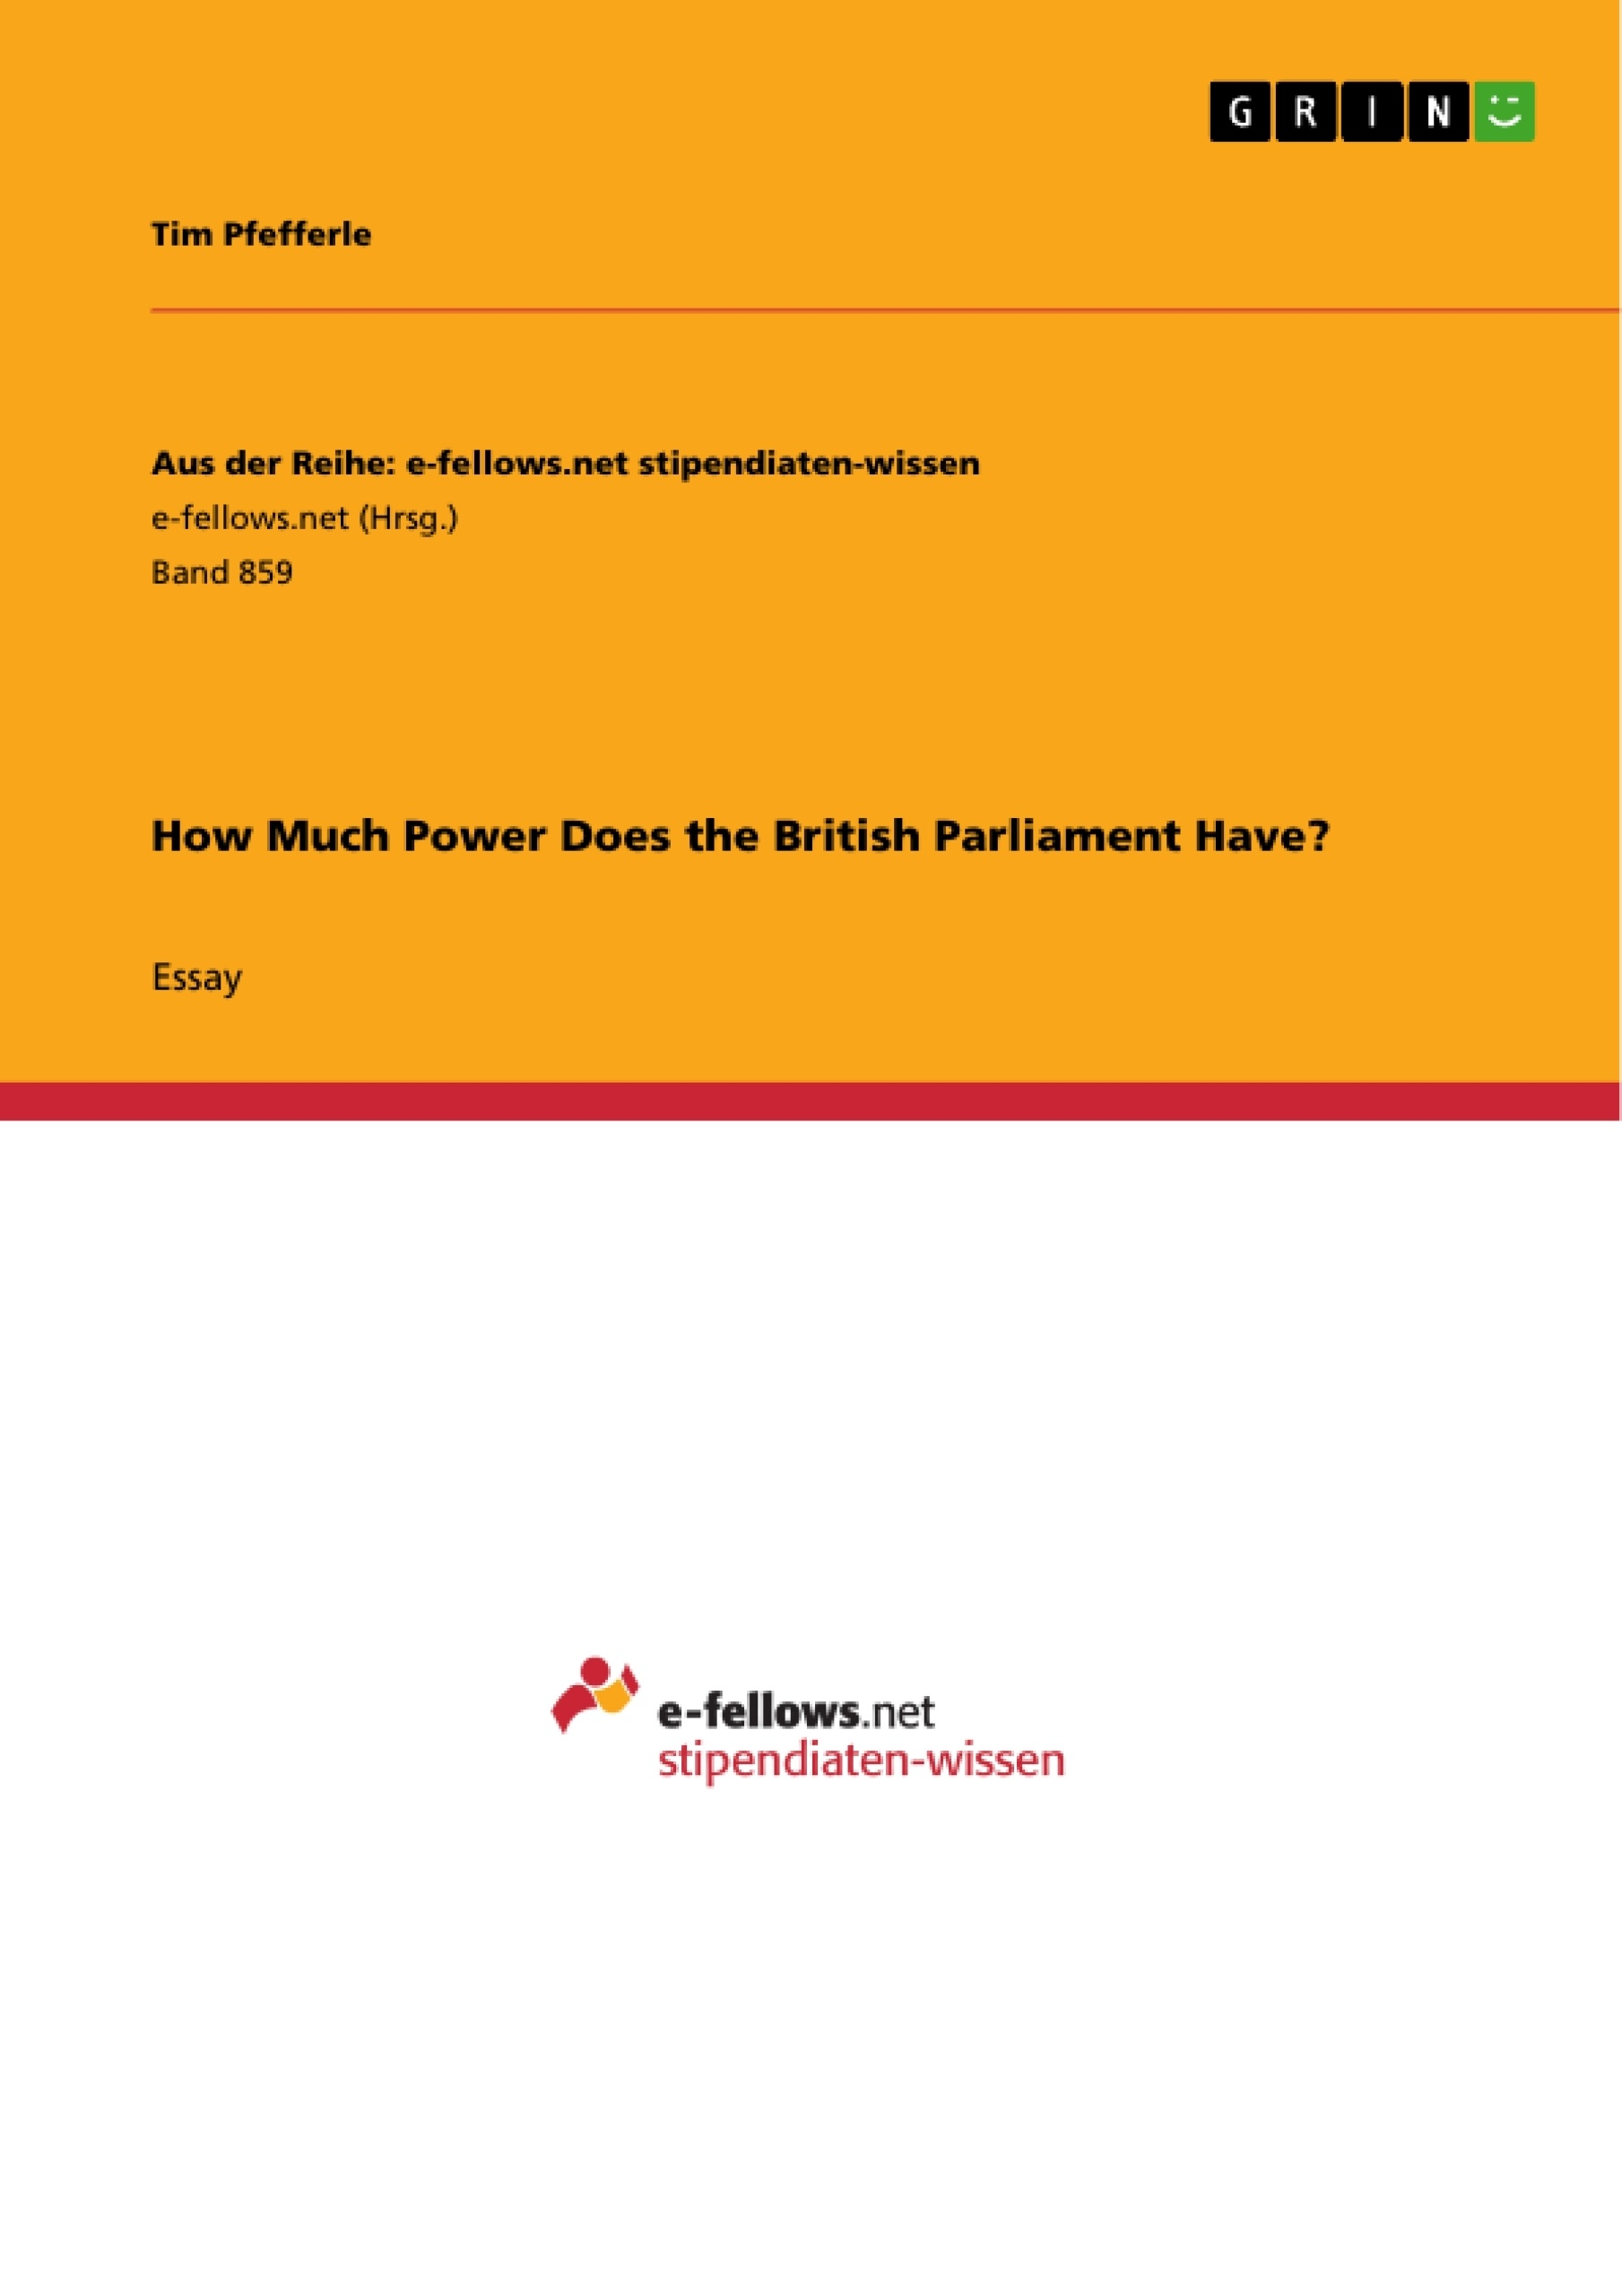 Title: How Much Power Does the British Parliament Have?